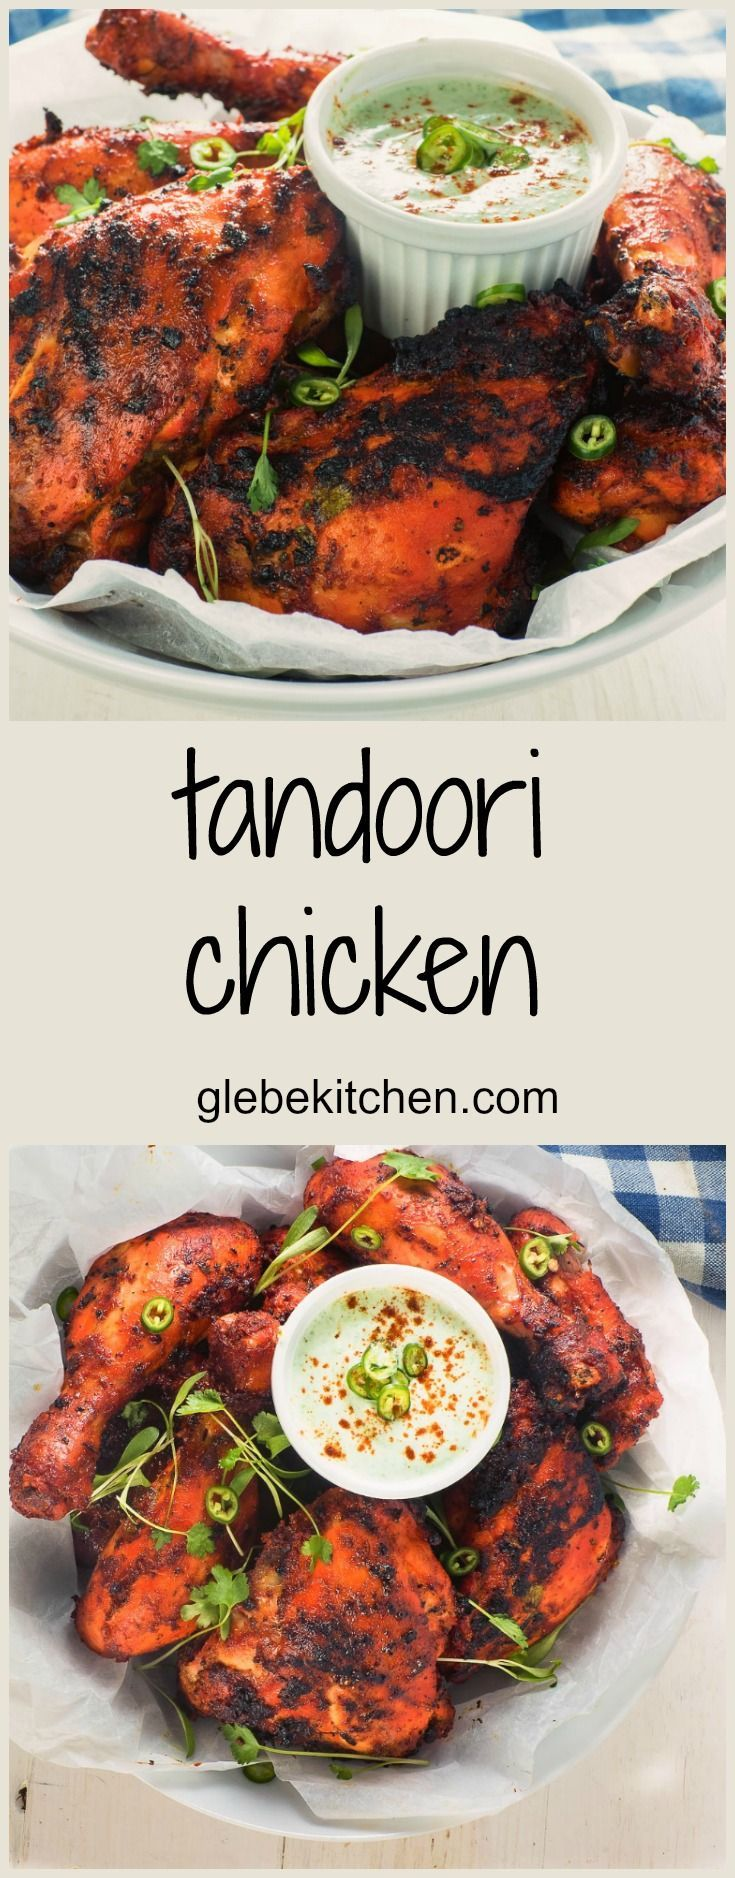 Make juicy, spicy and flavourful tandoori chicken at home. This tandoori chicken recipe will make your tandoori better than what you've had in restaurants.